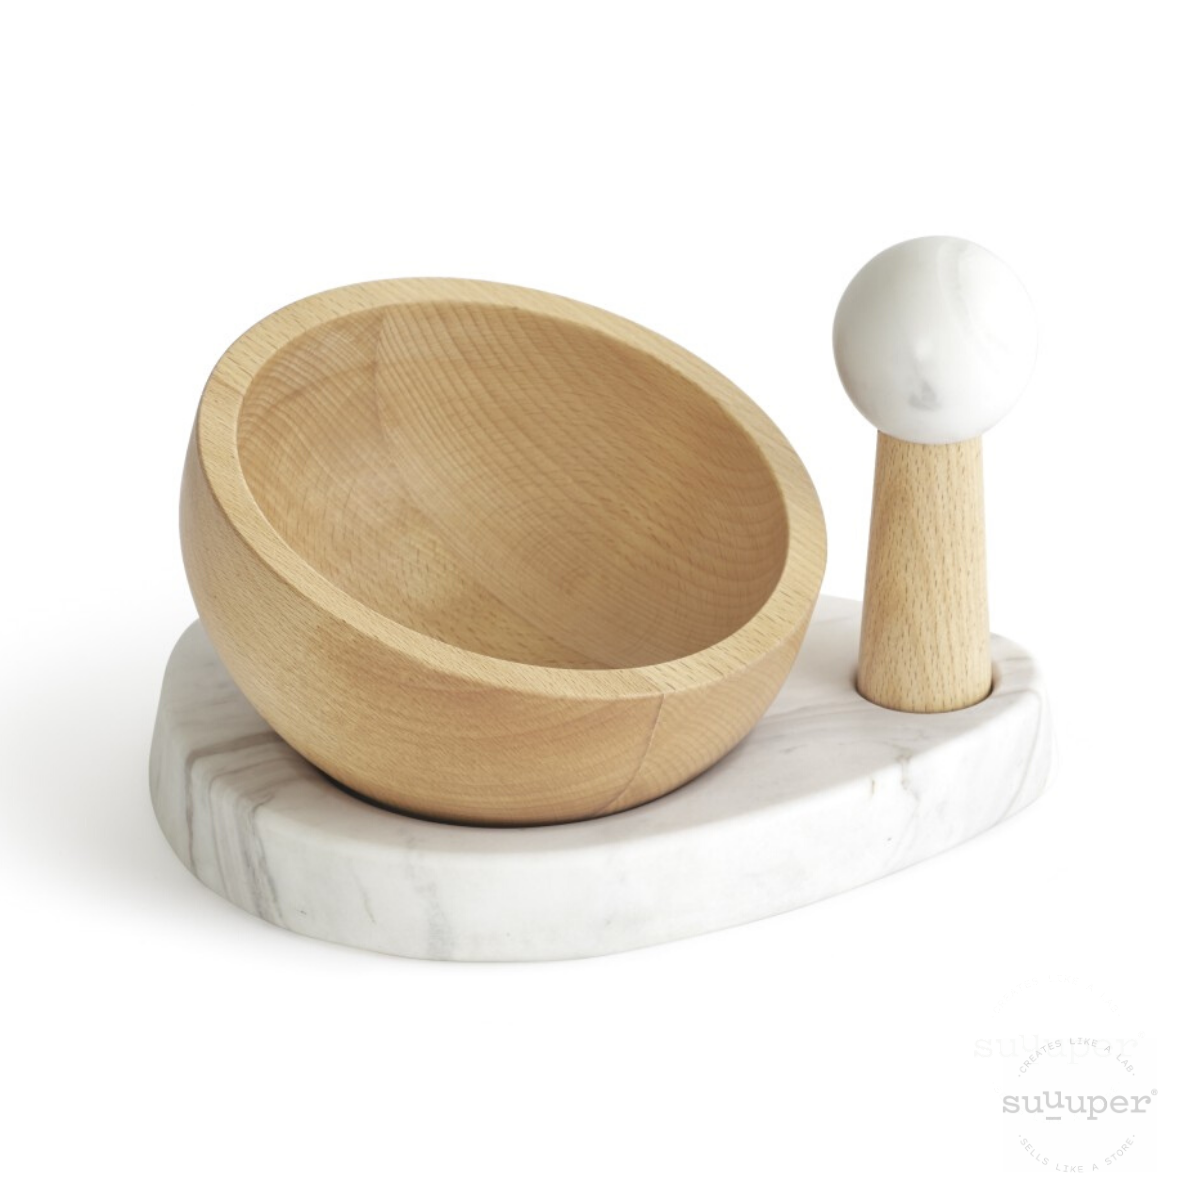 MORTAR & PESTLE - Design by Castor